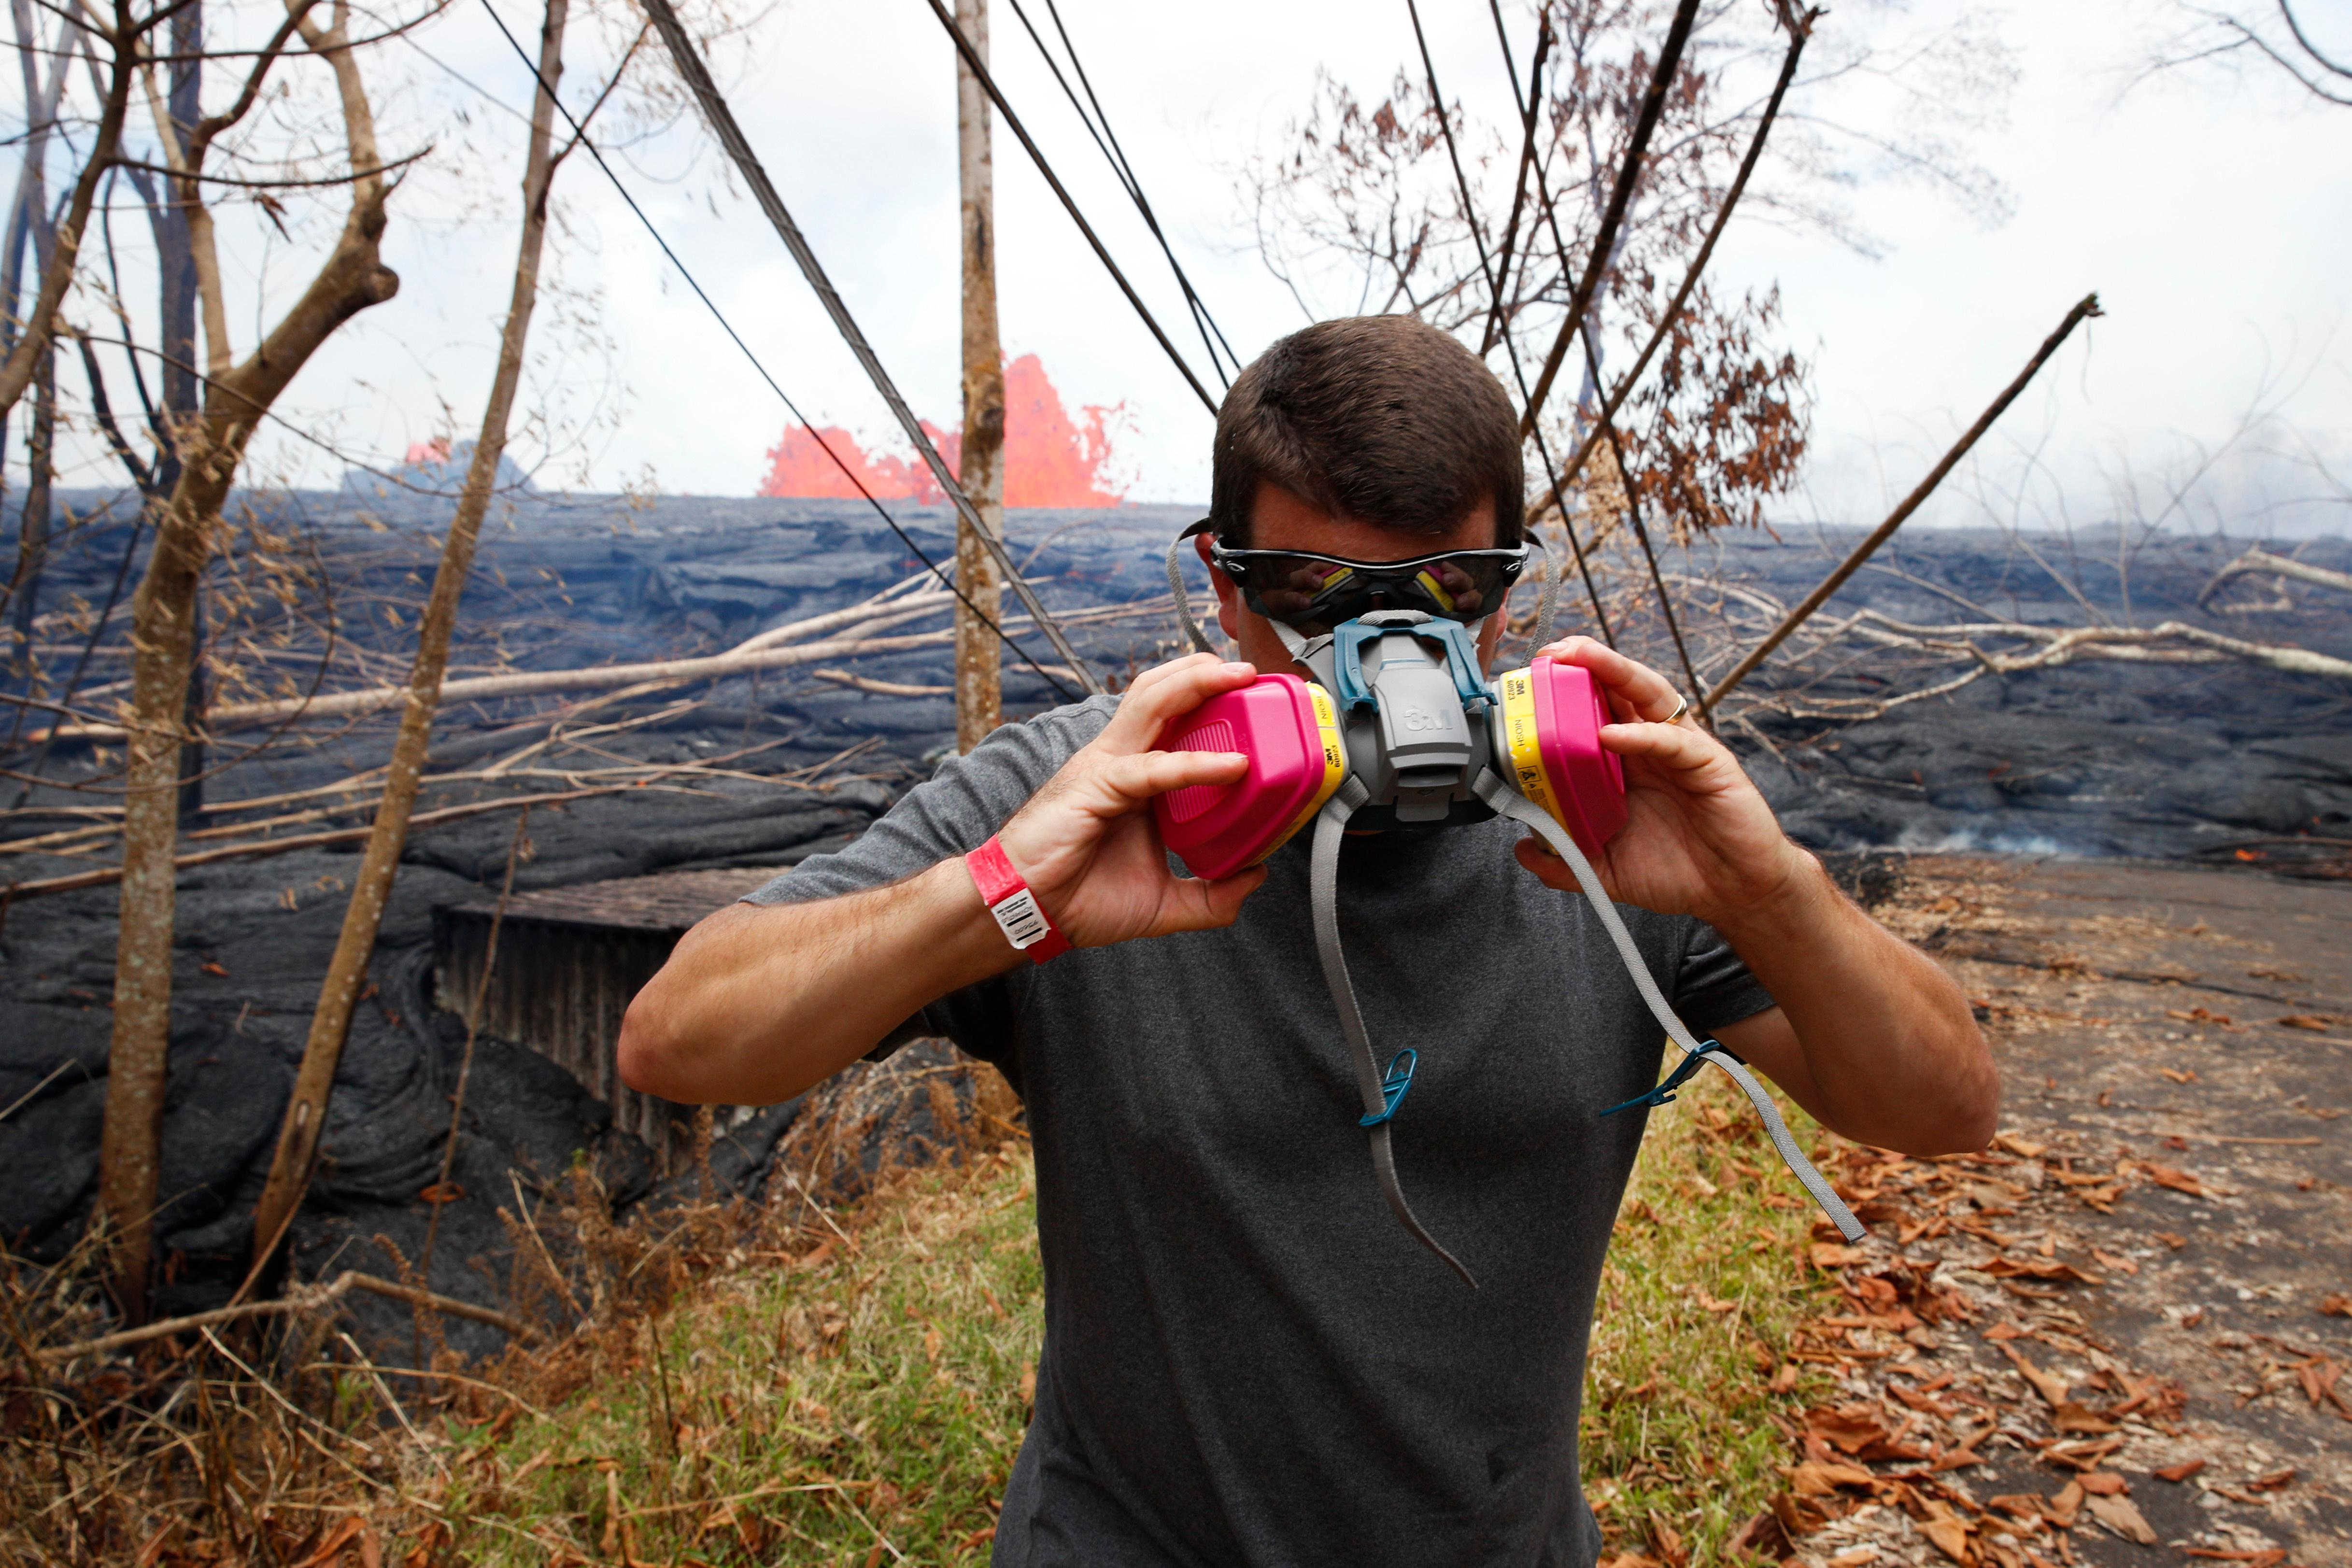 Heath Dalton removes his mask as lava erupts from fissures in the Leilani Estates subdivision near Pahoa, Hawaii, Tuesday, May 22, 2018. Authorities were racing Tuesday to close off production wells at a geothermal plant threatened by a lava flow from Kilauea volcano on Hawaii's Big Island. (AP Photo/Jae C. Hong)